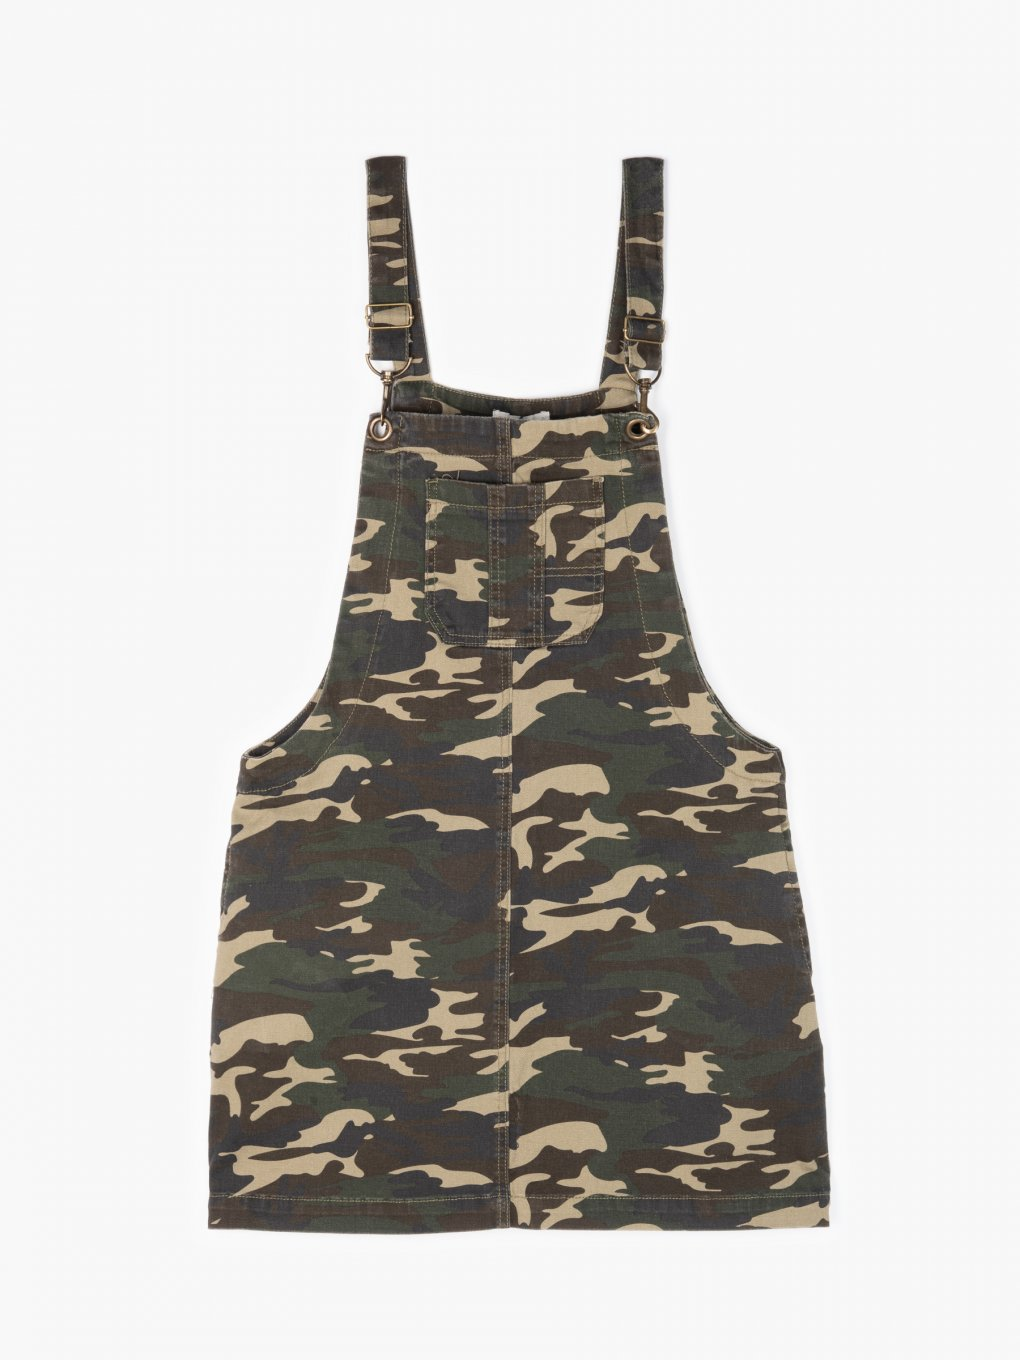 Camo print dungaree skirt